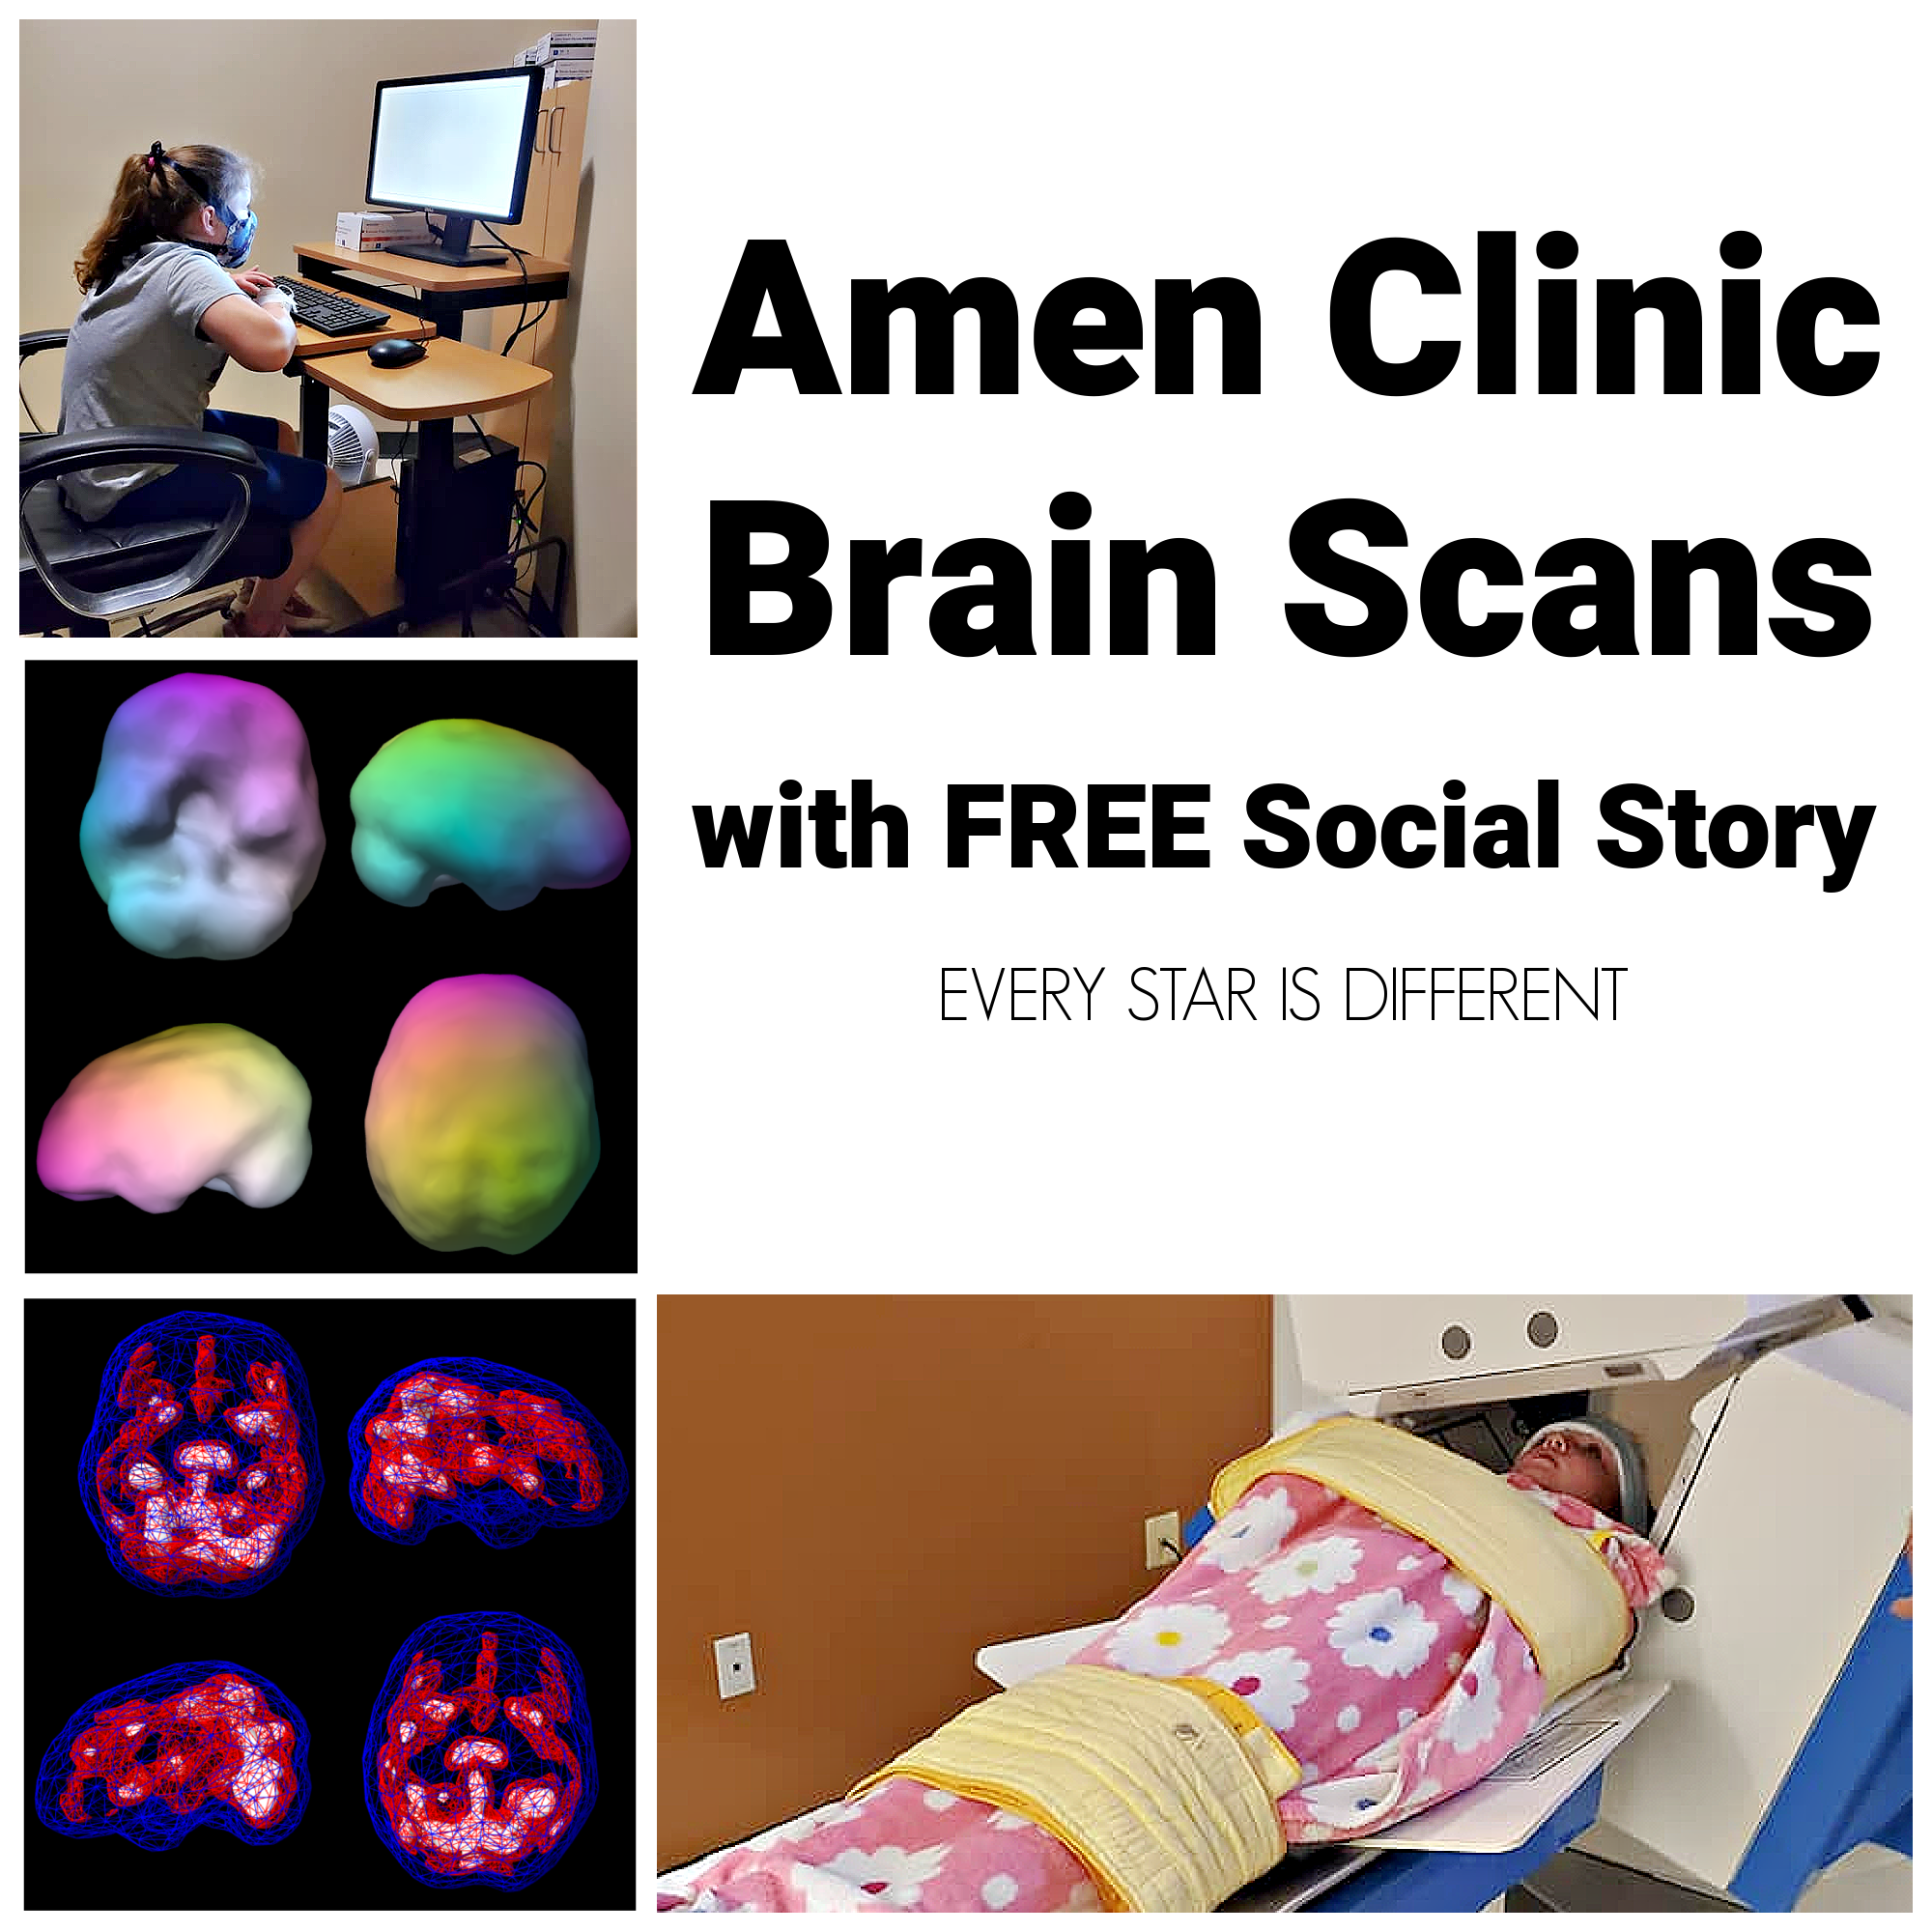 Amen Clinic Brain Scans with FREE Social Story